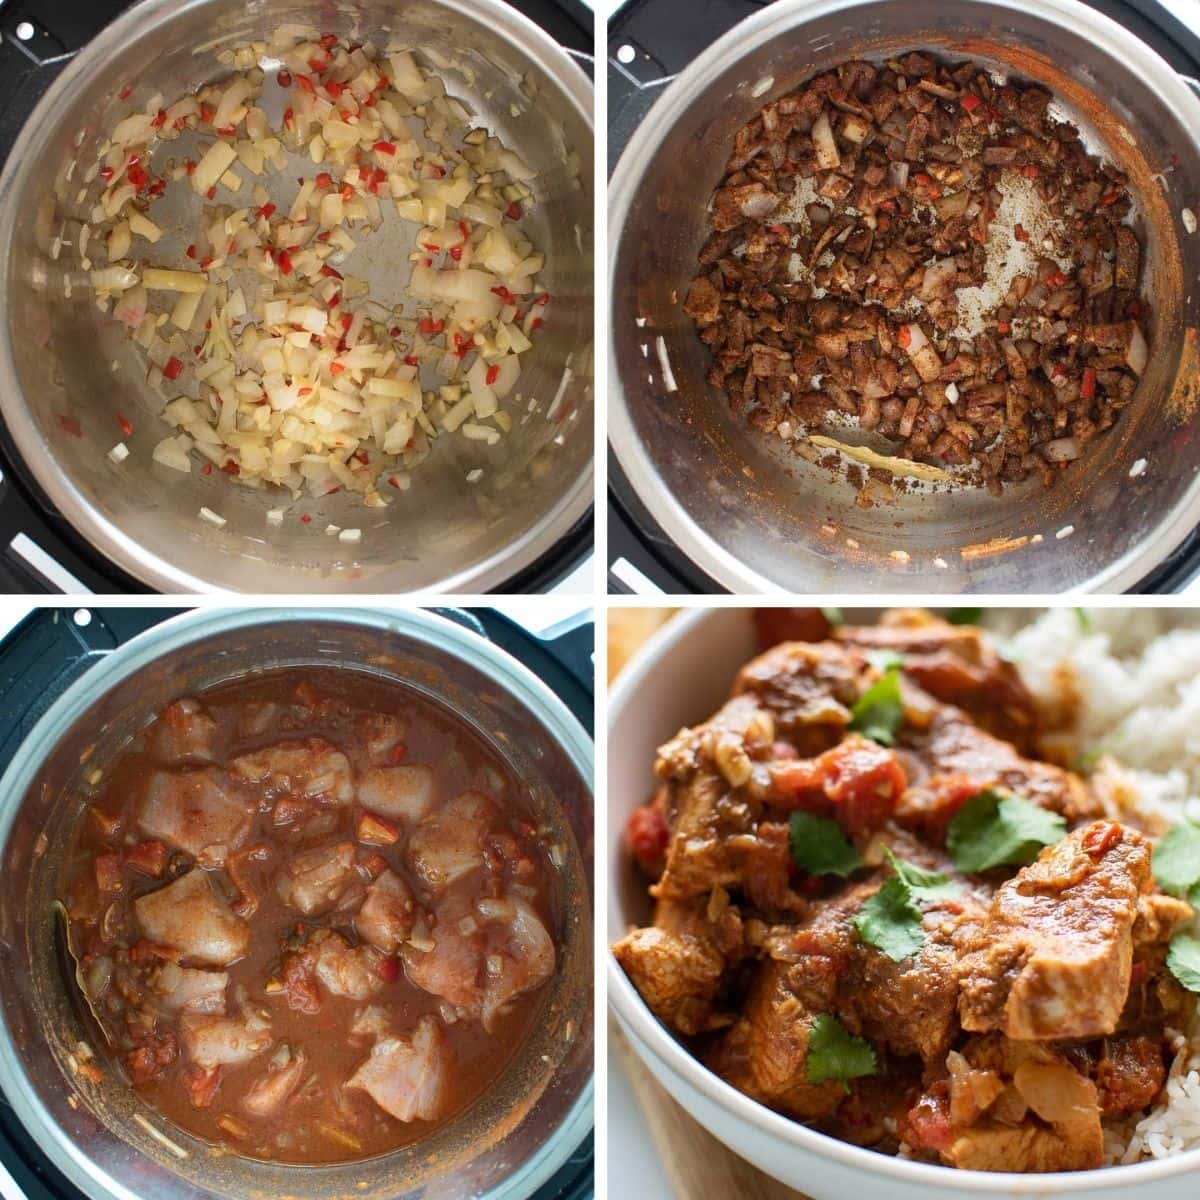 Step by step images showing how to make Instant Pot chicken curry.